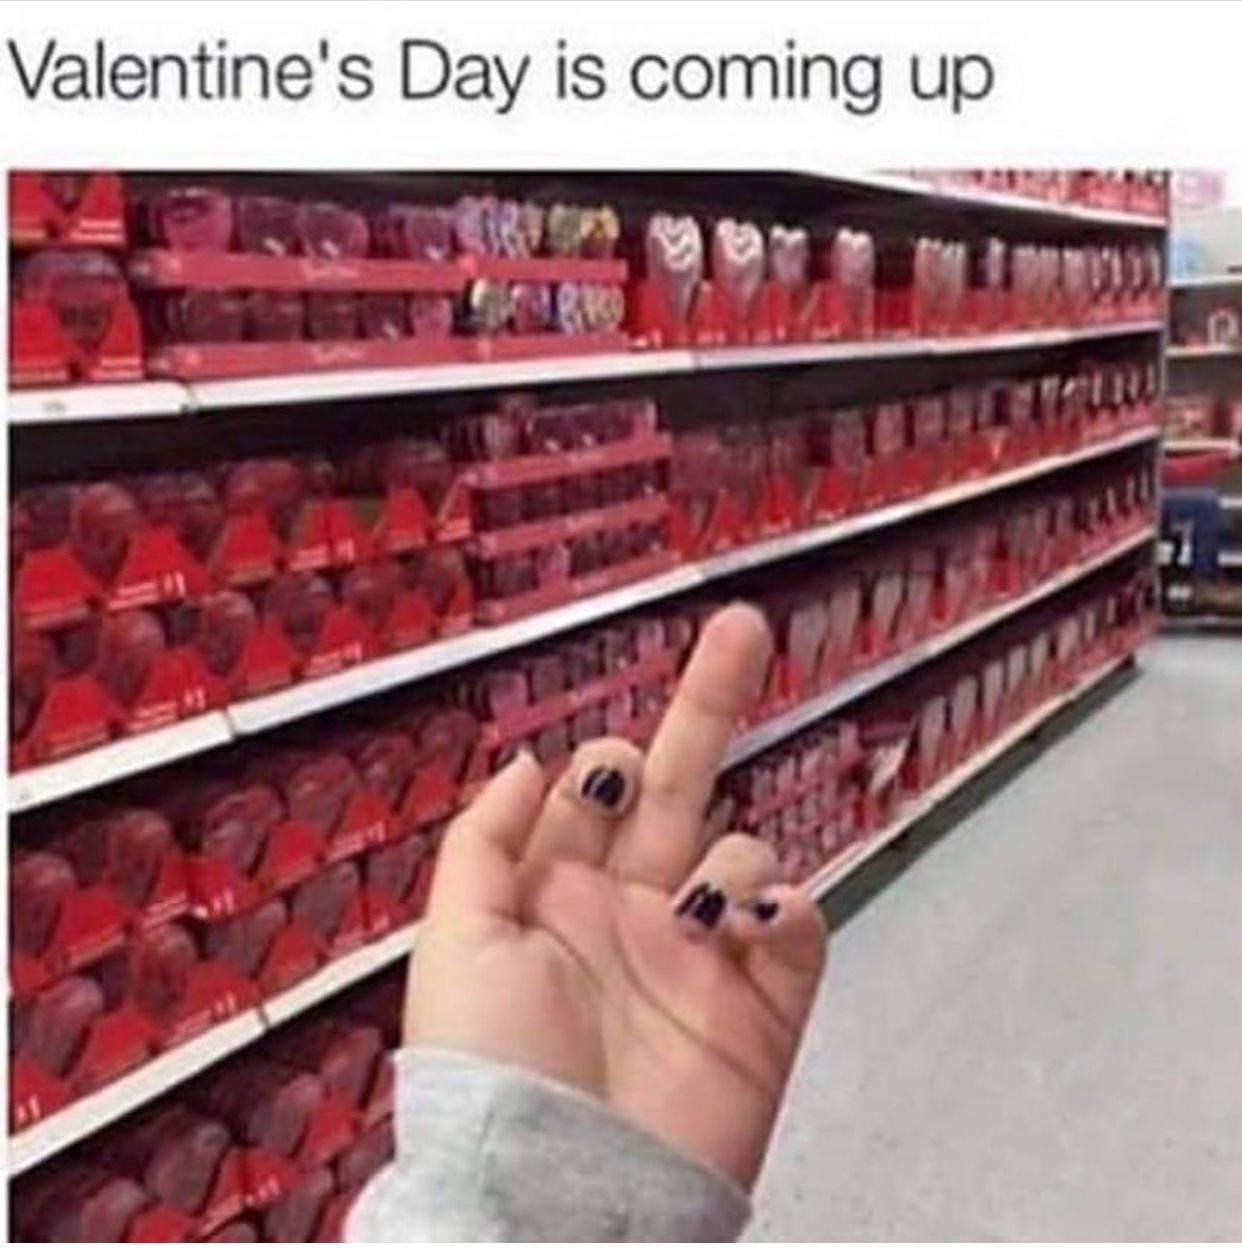 Pin By Angela Piper On Hilarious Valentines Quotes Funny Valentines Memes Single Humor